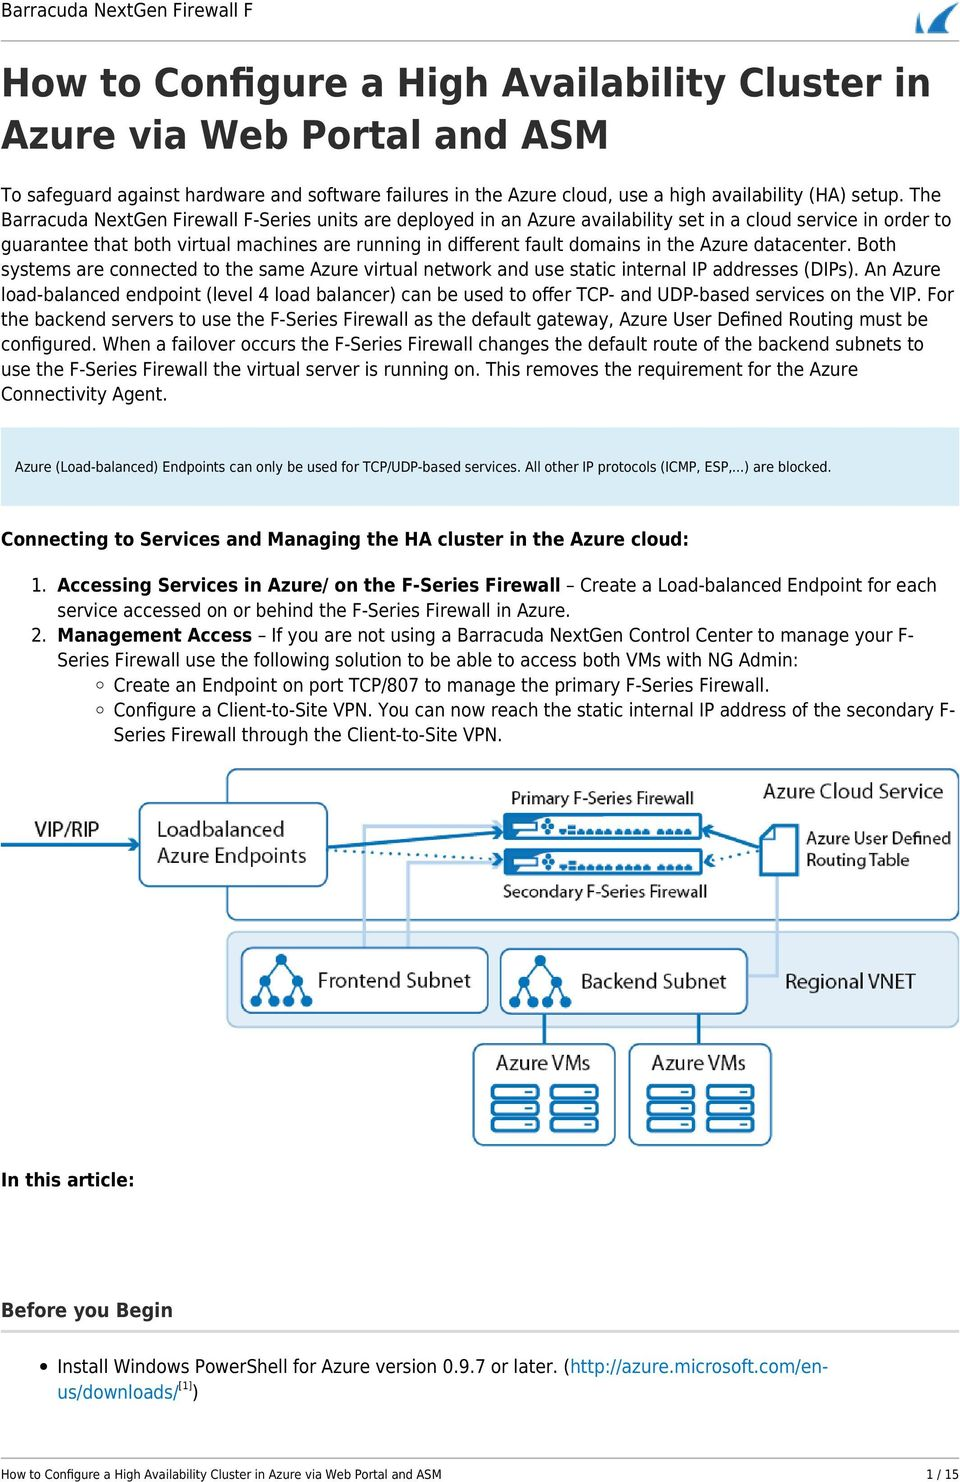 How to Configure a High Availability Cluster in Azure via